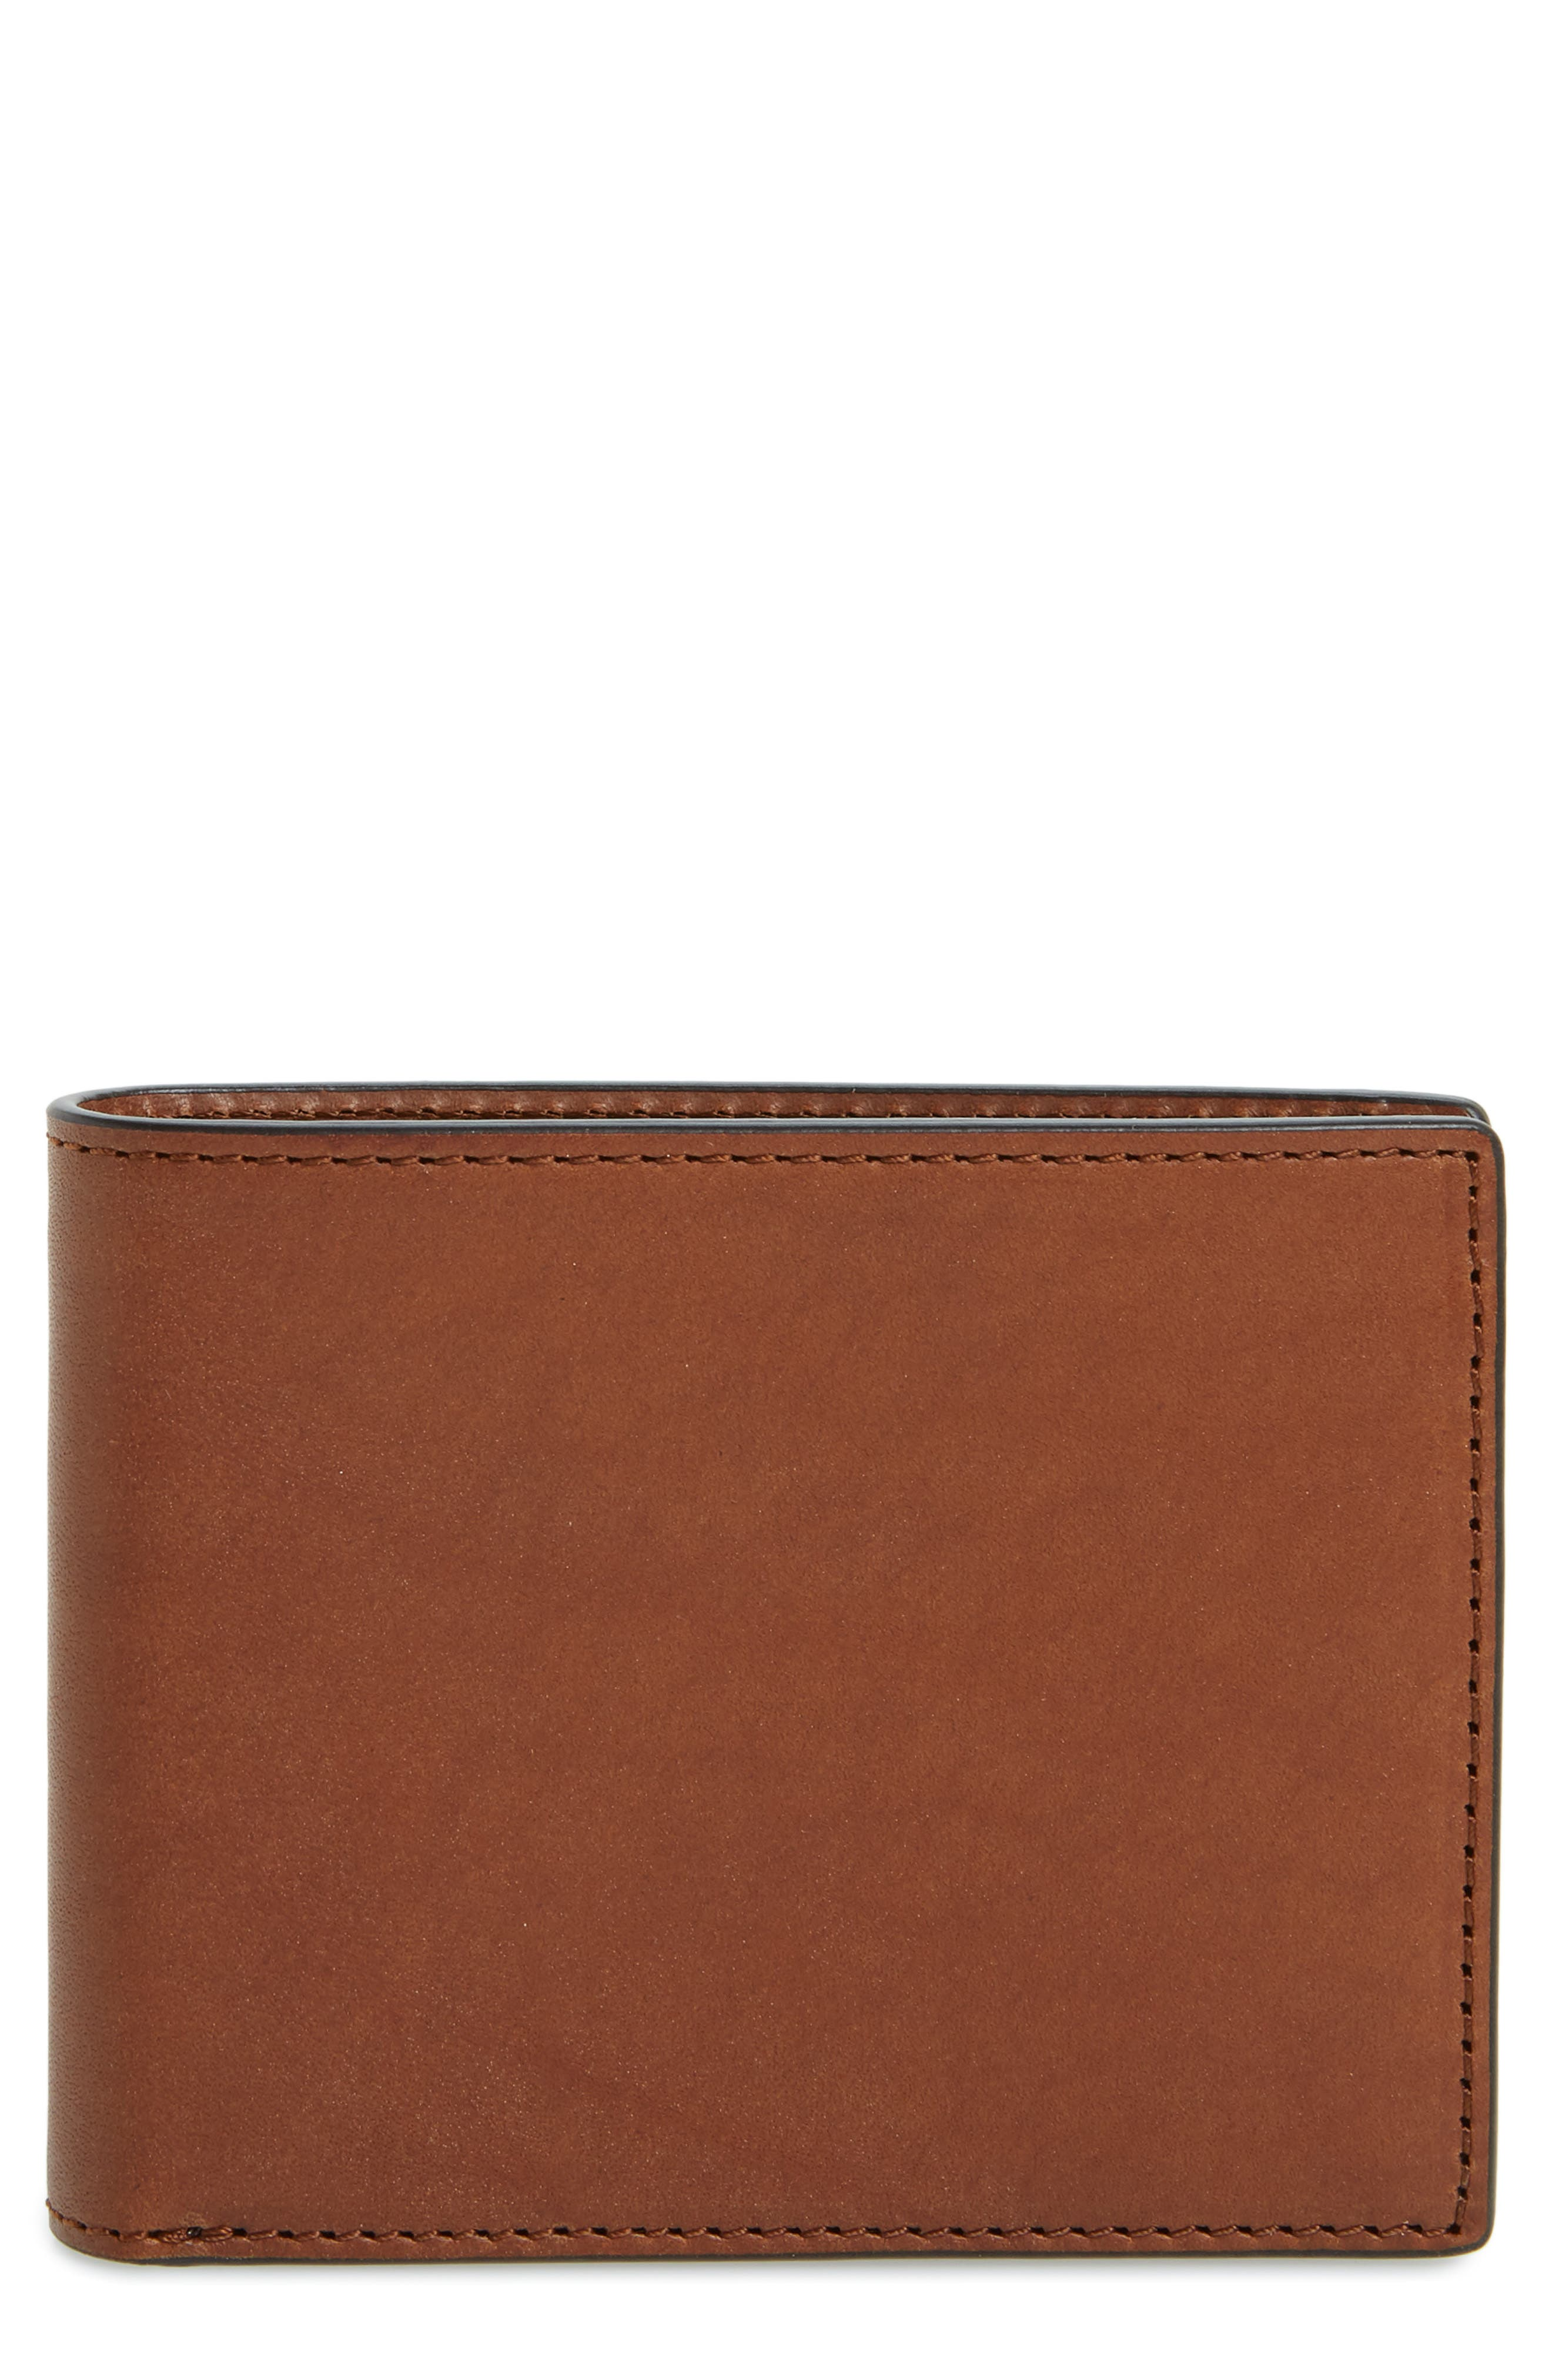 RAG & BONE, Hampshire Leather Bifold Wallet, Main thumbnail 1, color, BROWN COMBO